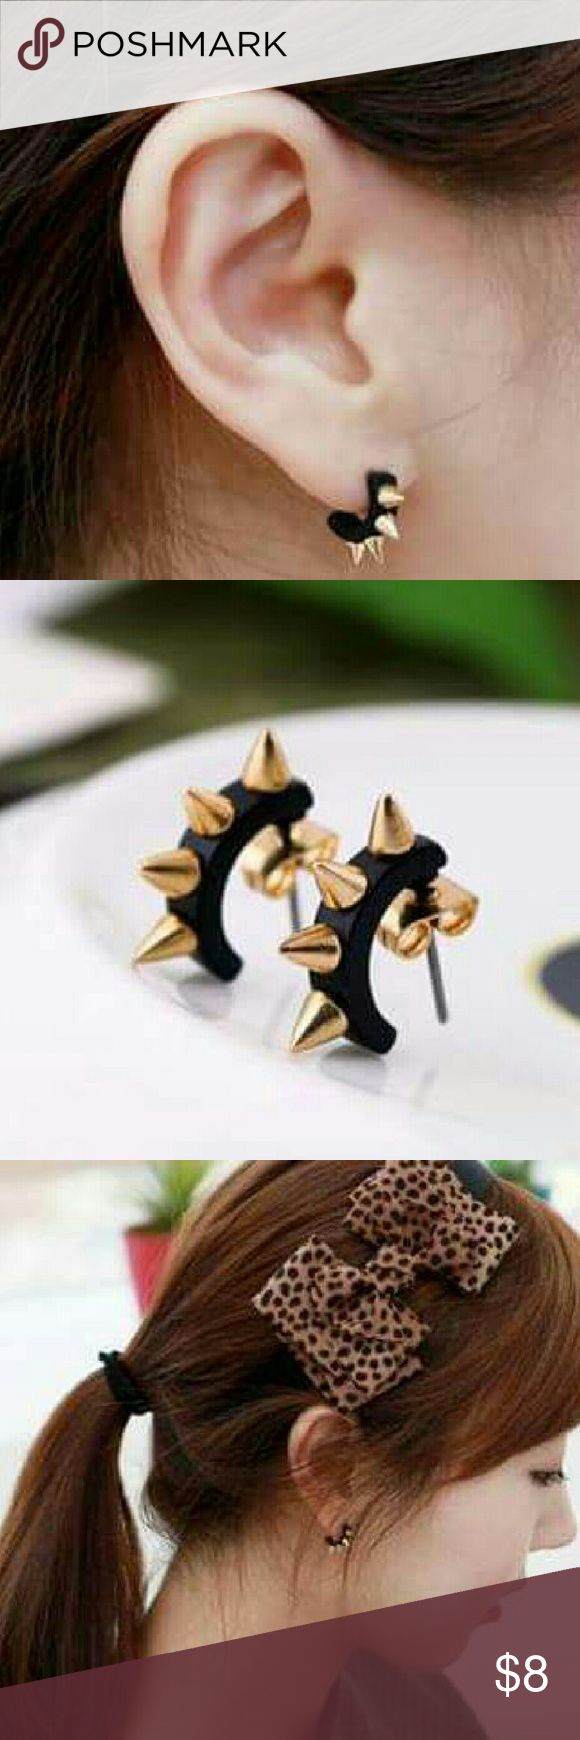 Spike Earrings New black spike earrings.  SPECIAL DEAL!. Get 3 pairs of earrings for $15!! Simply bundle 3 different pairs and offer $15 and I will accept!  Jewelry Earrings